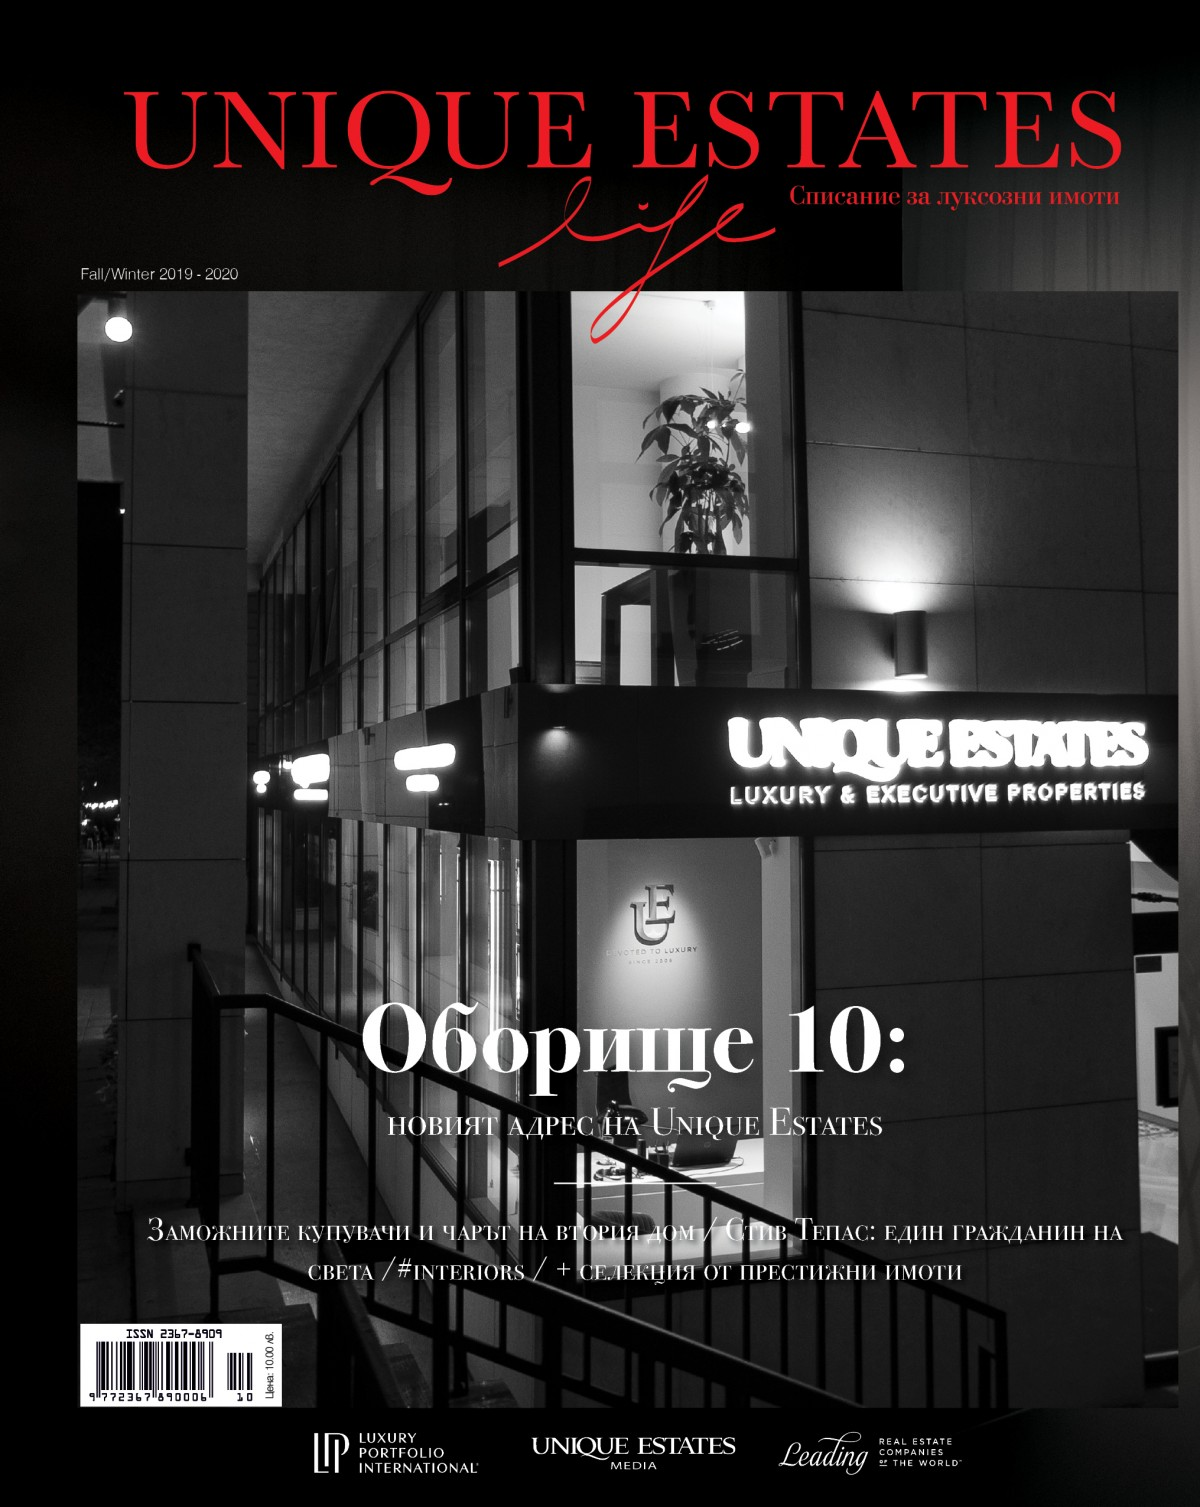 Fall/Winter Issue 2019-2020